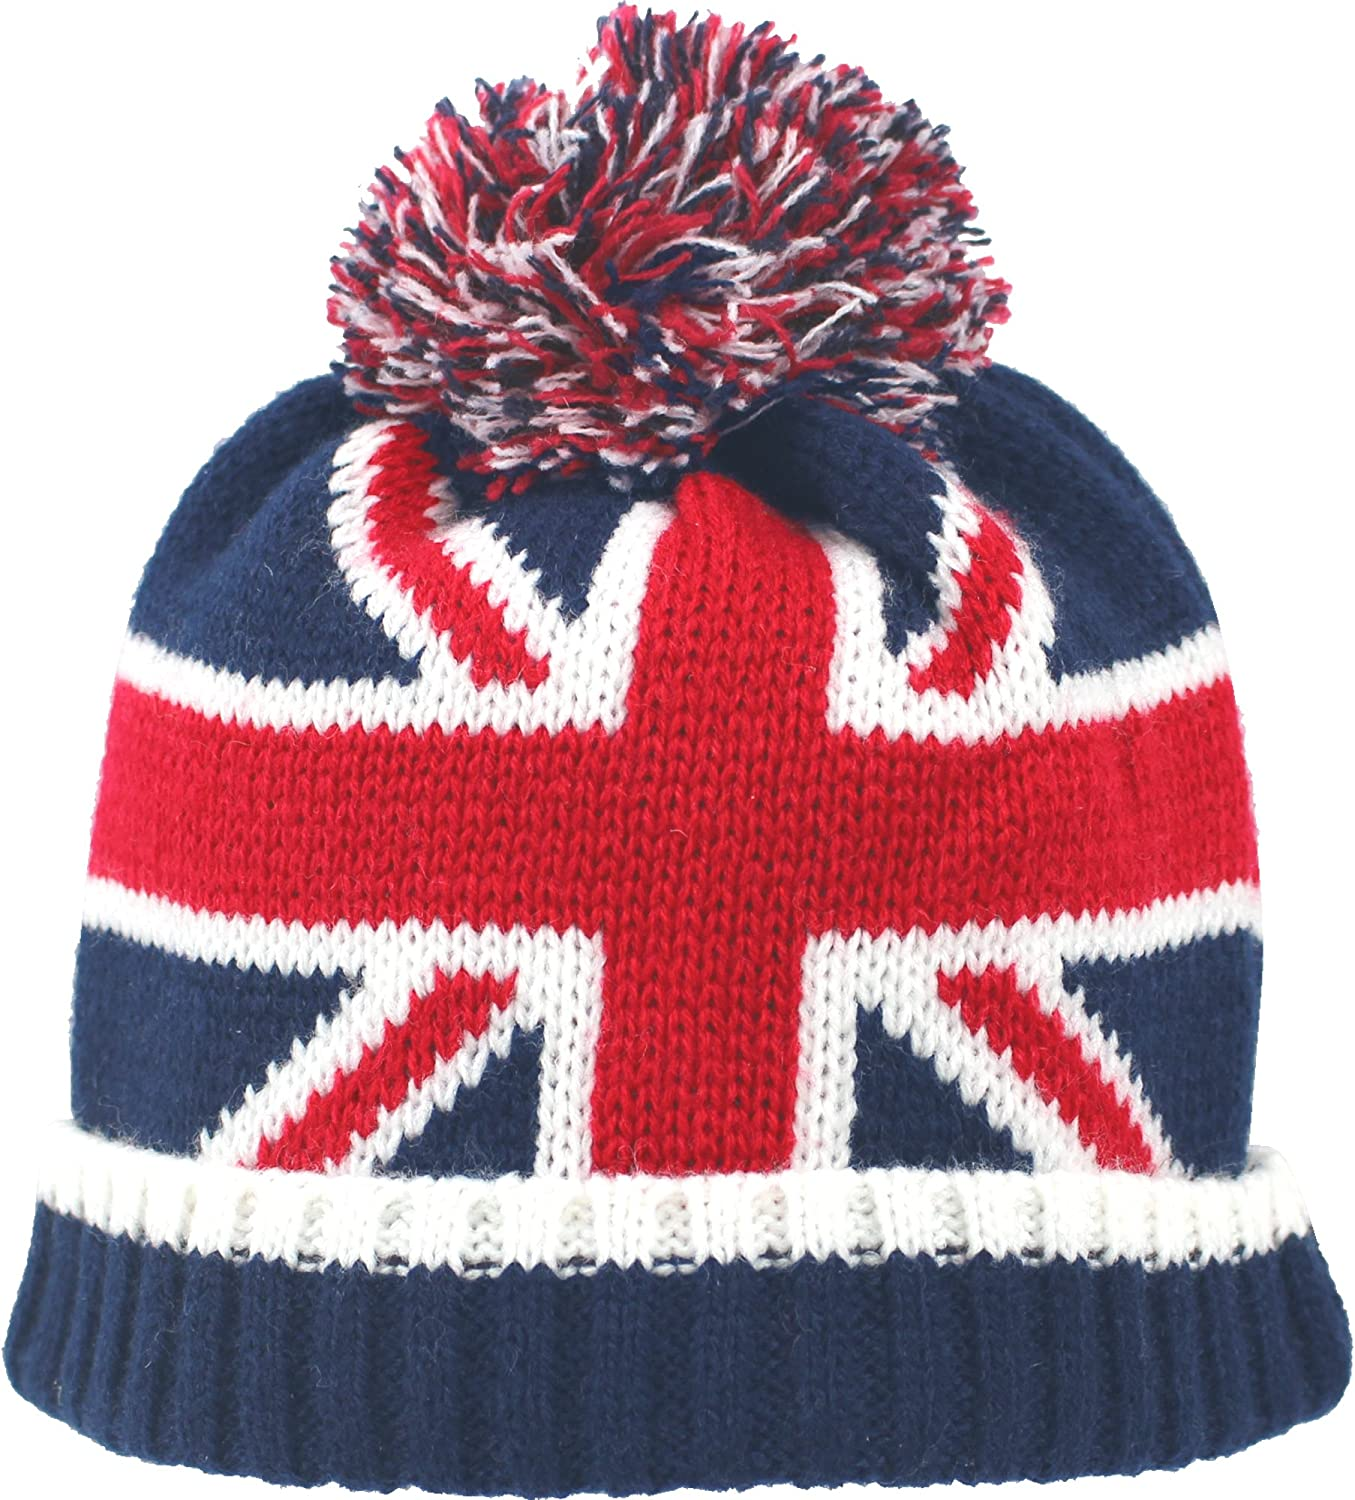 TeddyTs Baby Boys Knitted USA /& Great Britain Fluffy Bobble Hat